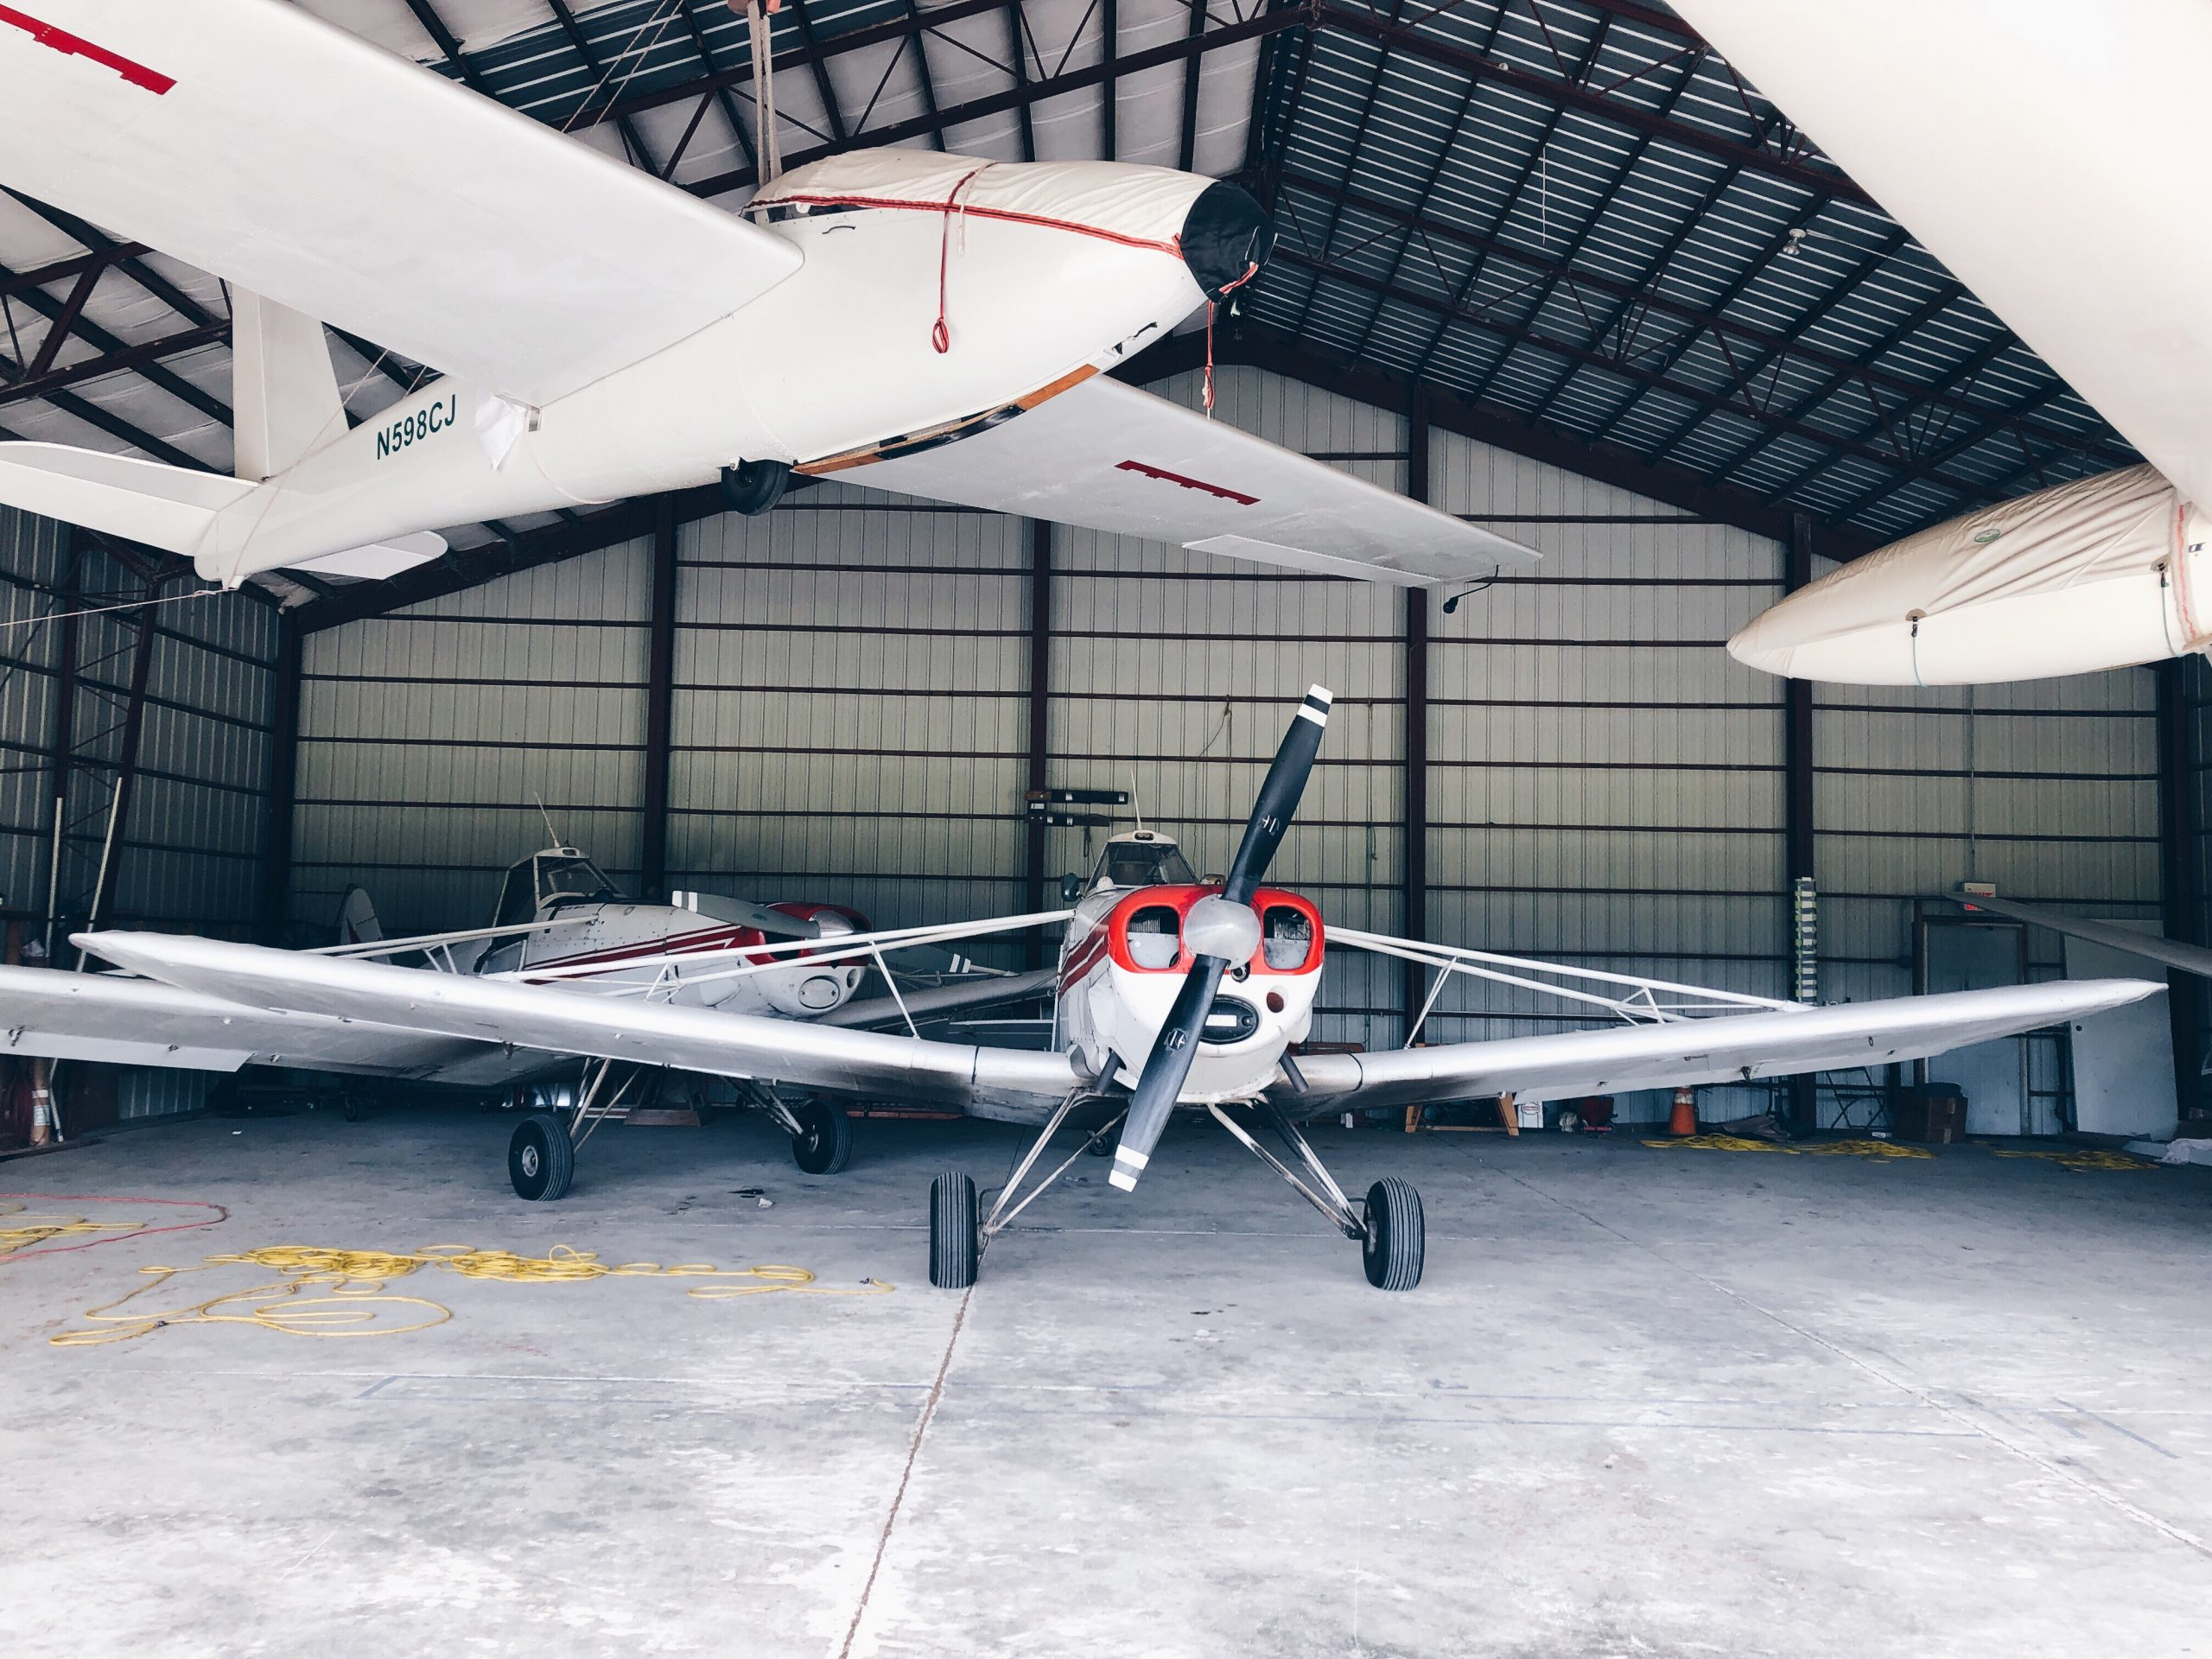 airplane hangar steel building with aircraft